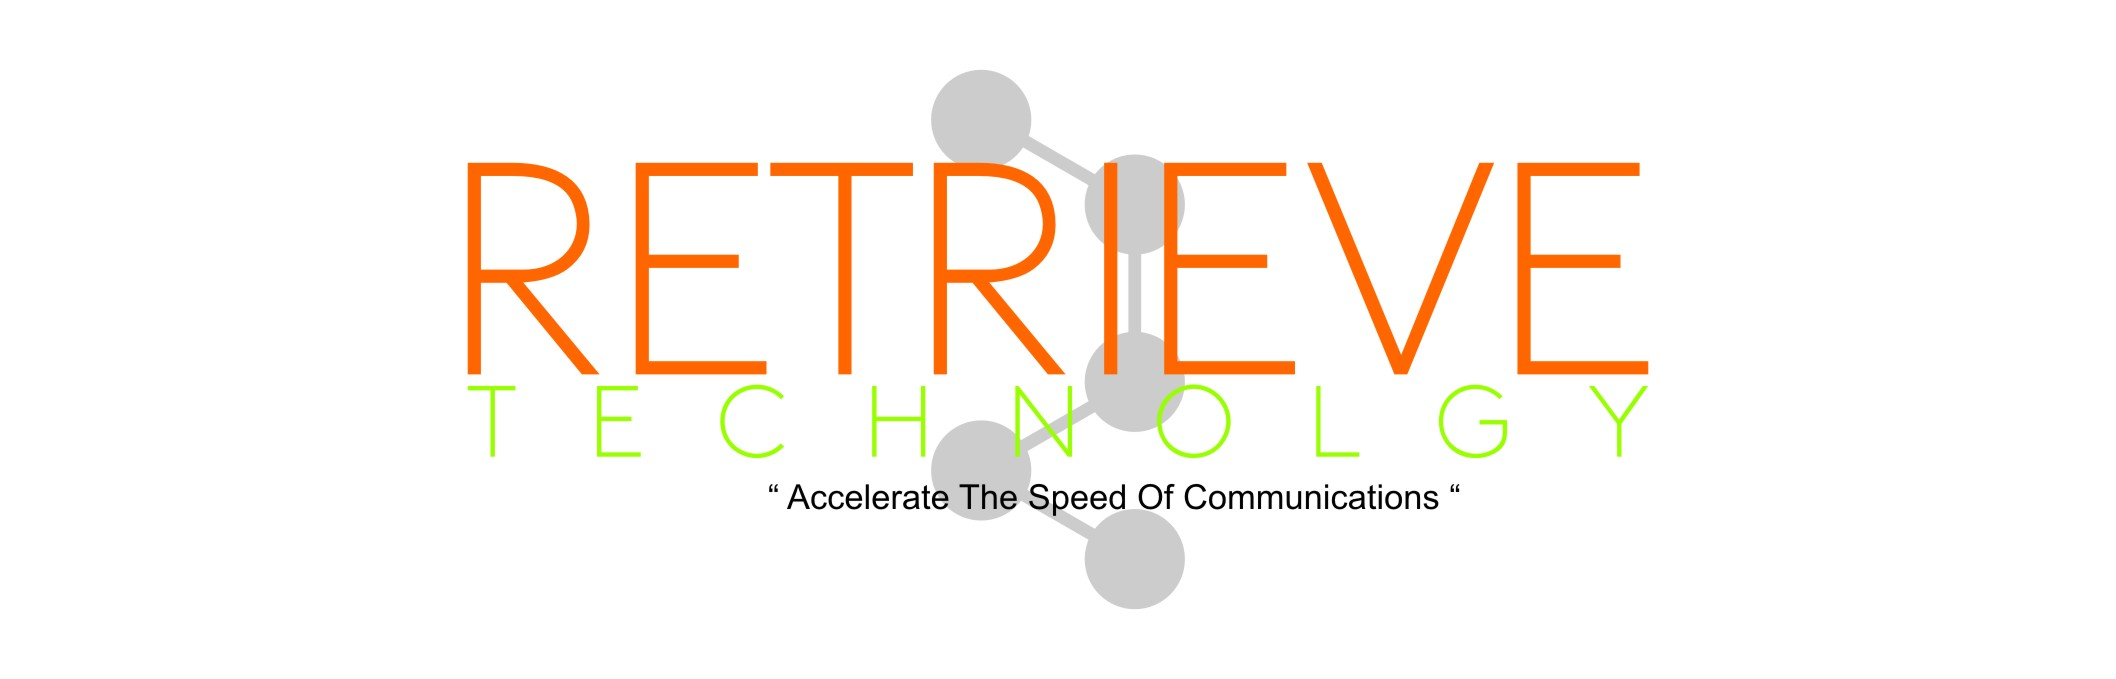 Logo Design by Gogon Reznor - Entry No. 122 in the Logo Design Contest Artistic Logo Design for Retrieve Technologies.